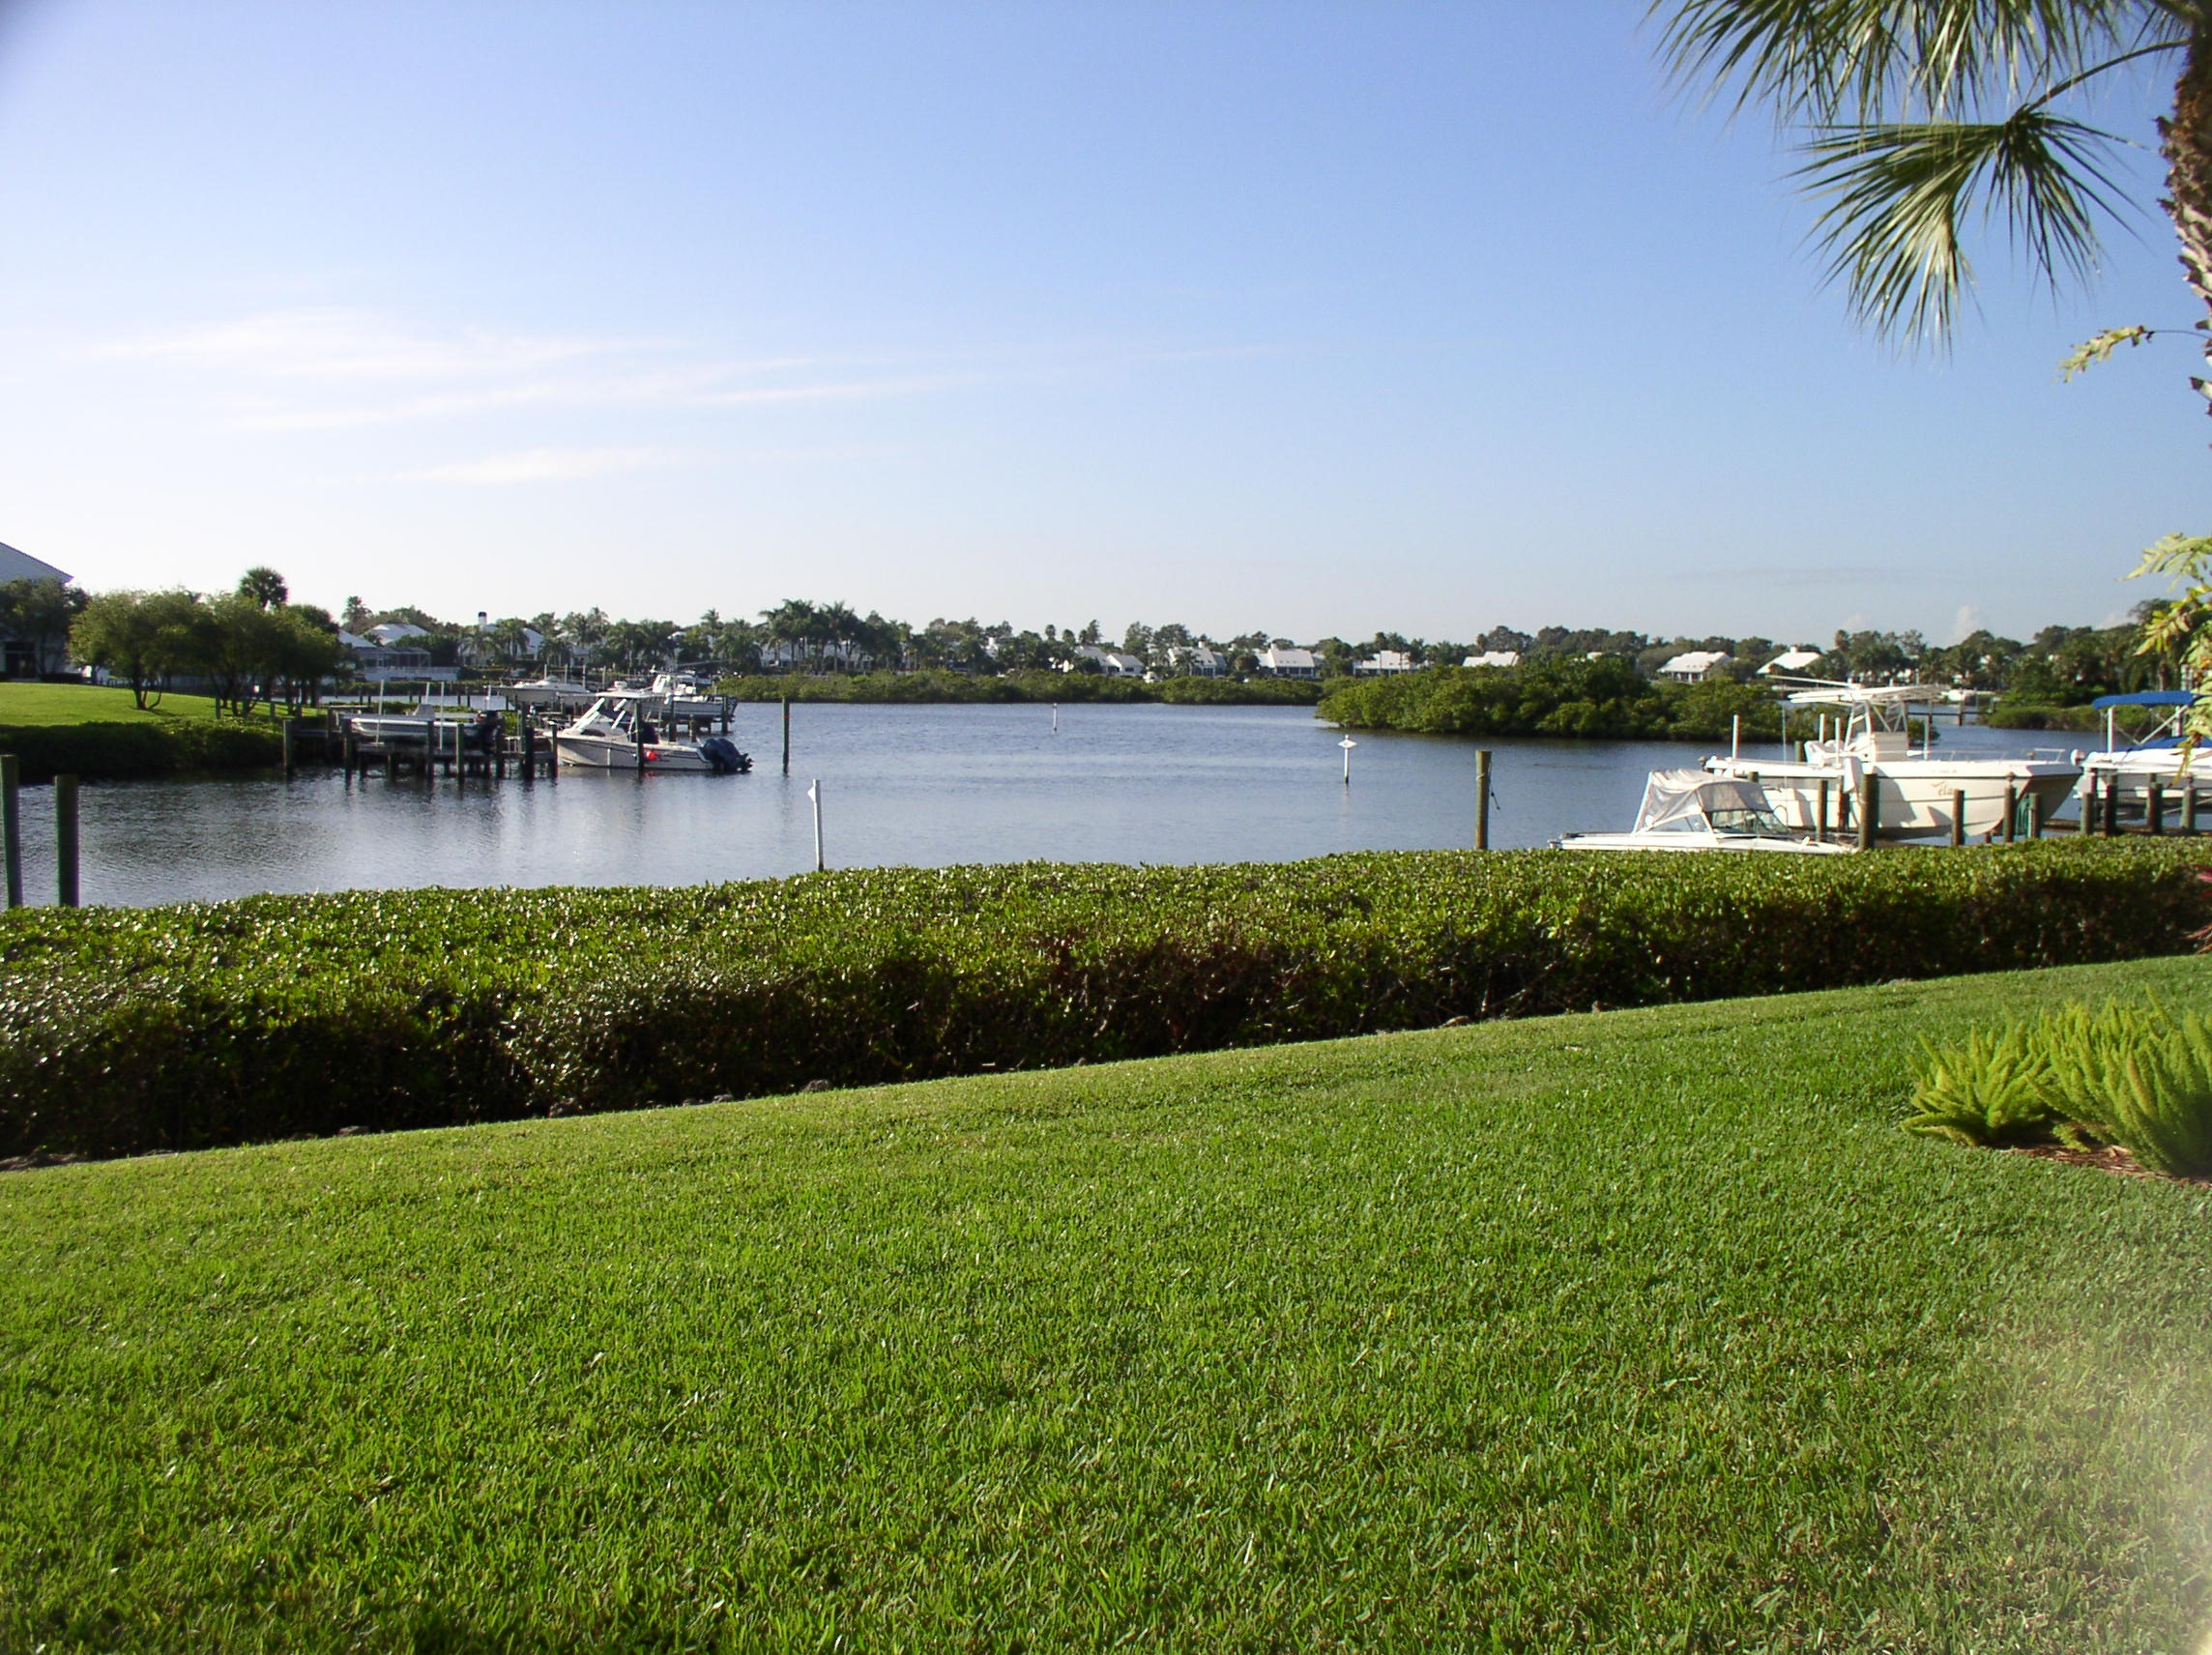 Waterfront Properties | Real Estate News, Information & Blog - Blog ...